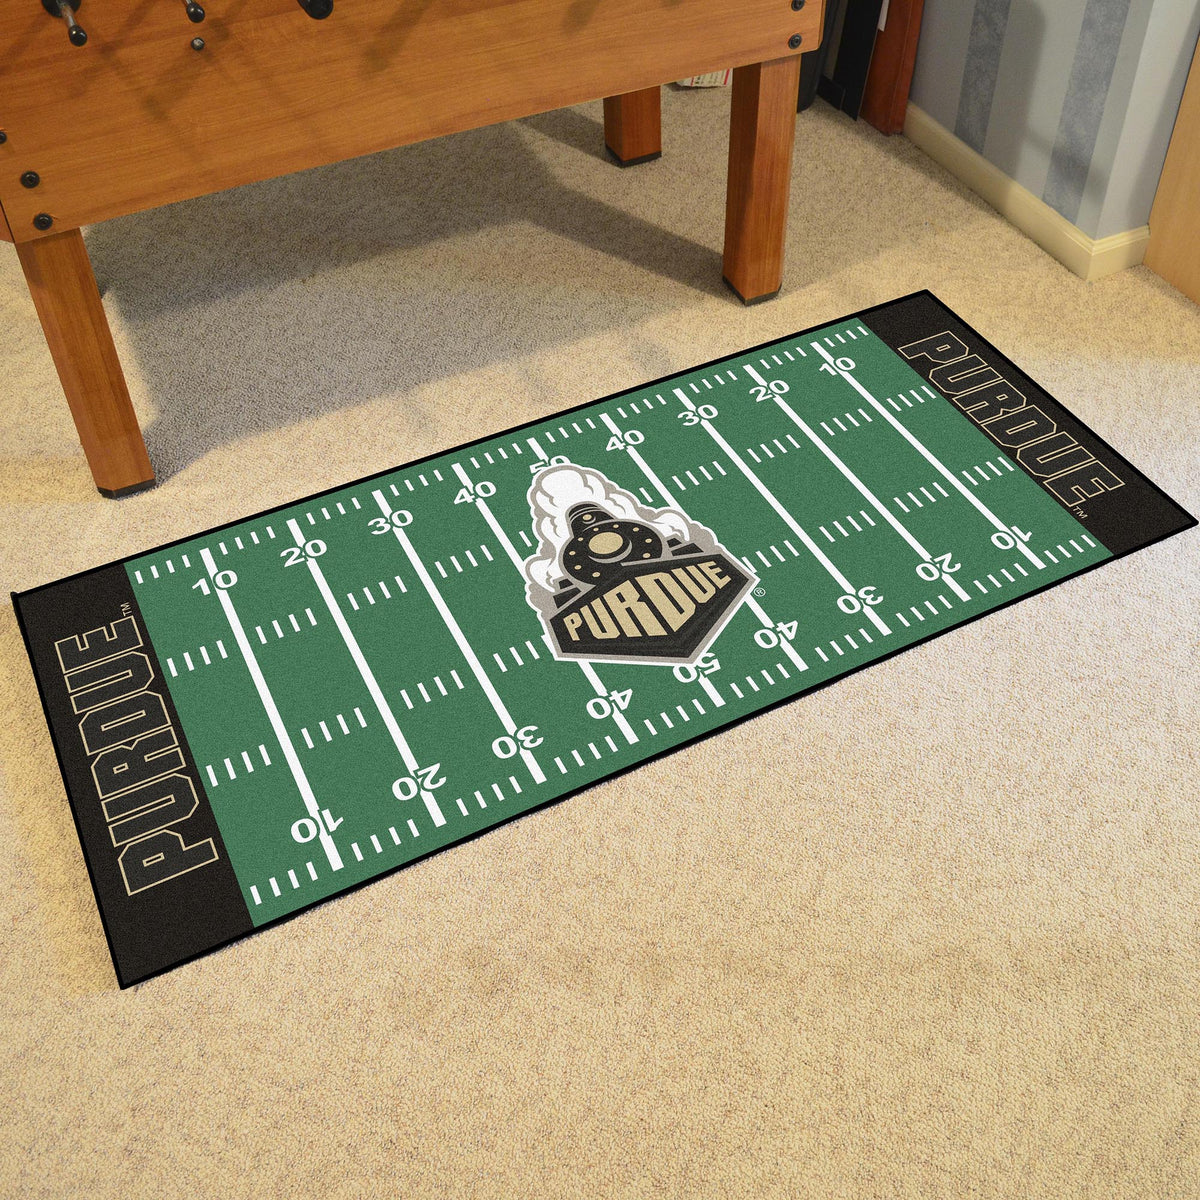 Collegiate - Football Field Runner Collegiate Mats, Rectangular Mats, Football Field Runner, Collegiate, Home Fan Mats Purdue